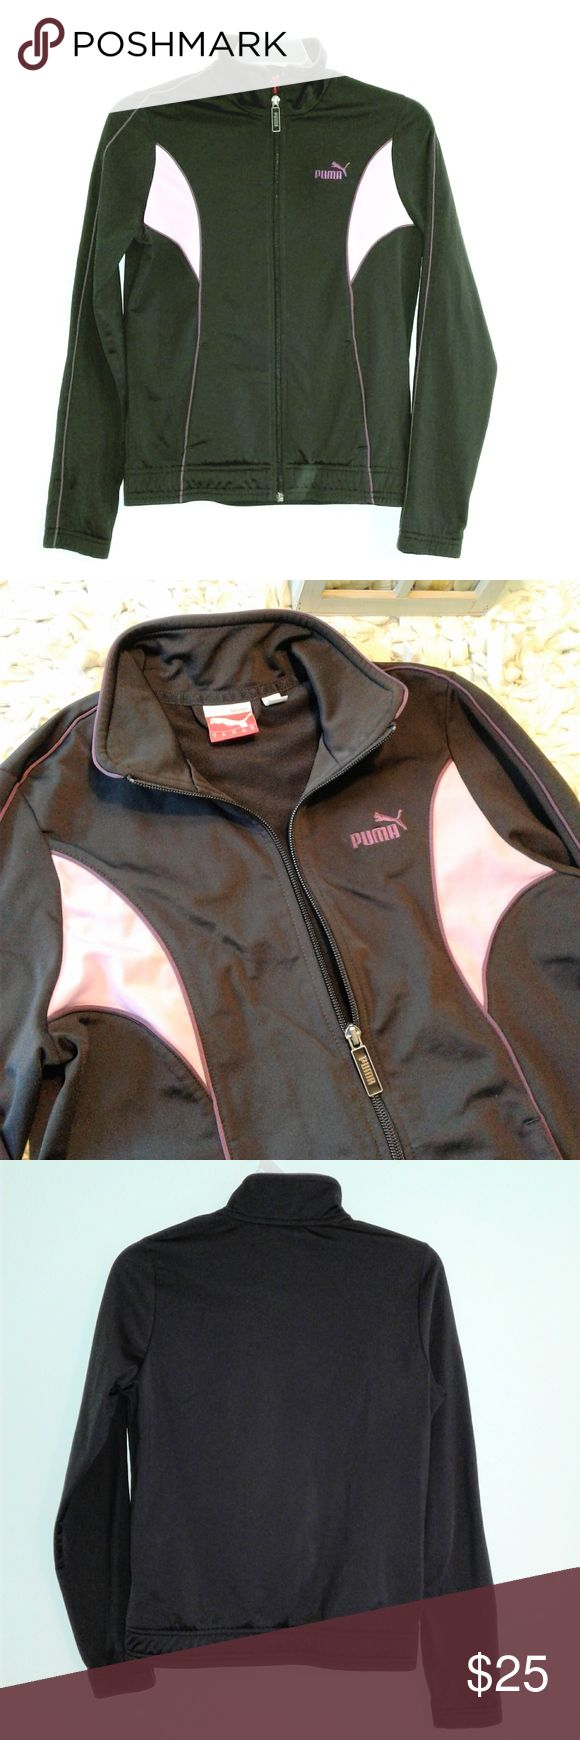 Puma Lifestyle Track Jacket Puma Lifestyle Track Jacket. Light purple and black zip up. Great for leisure or performance activity. EUC. Perfect for the upcoming season!  Size is Small. Puma Jackets & Coats